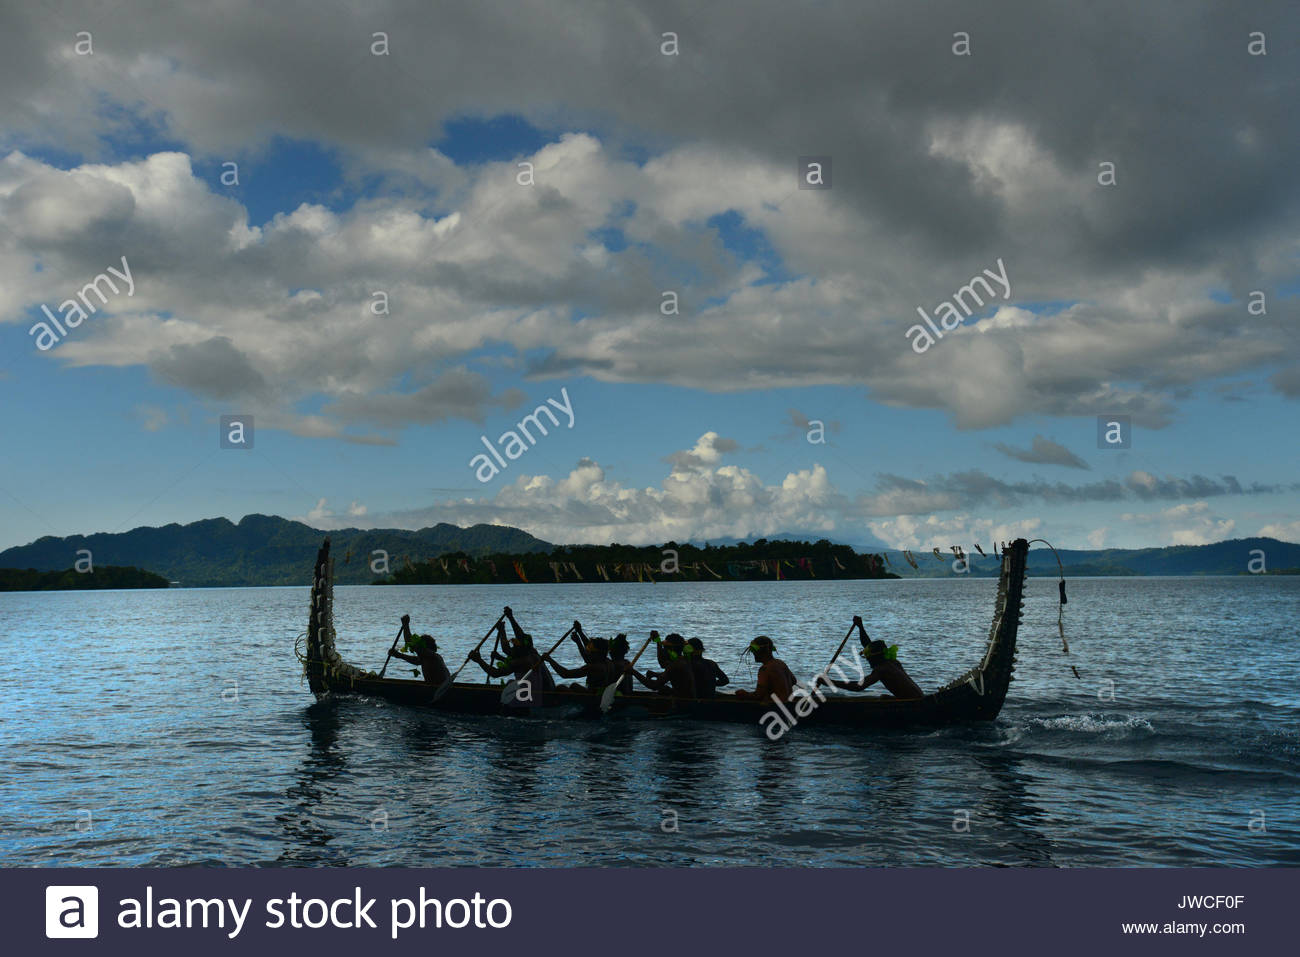 Men rowing in a traditional ceremonial canoe. - Stock Image